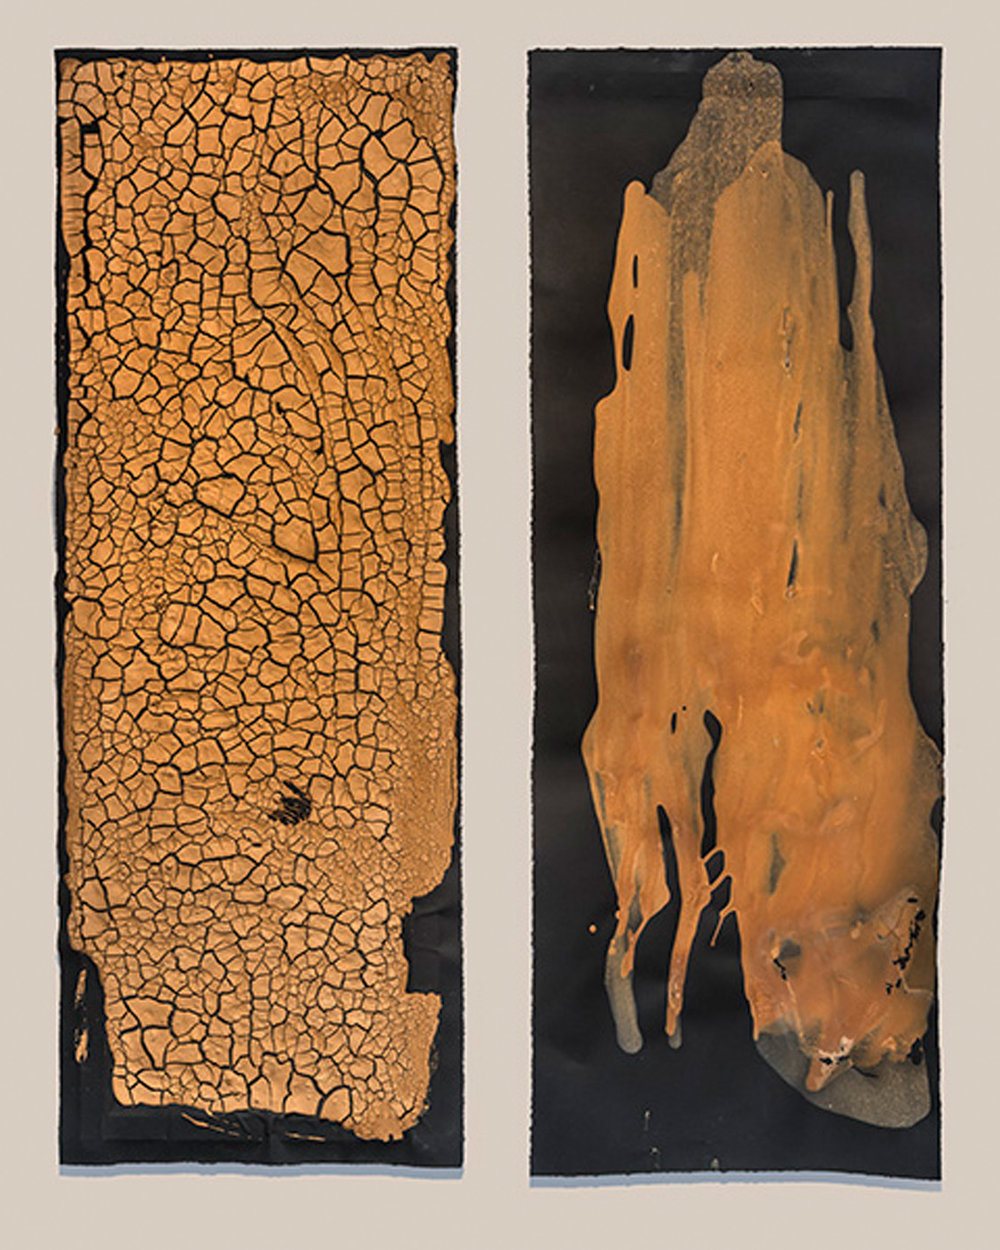 "Dyptch:  California/ Colorado   Left -  California , 2015, egg tempera paste with found earth pigments, 63 x 23"".  Right -   Colorado , 2015, egg tempera found earth pigments, 63 x 23"""